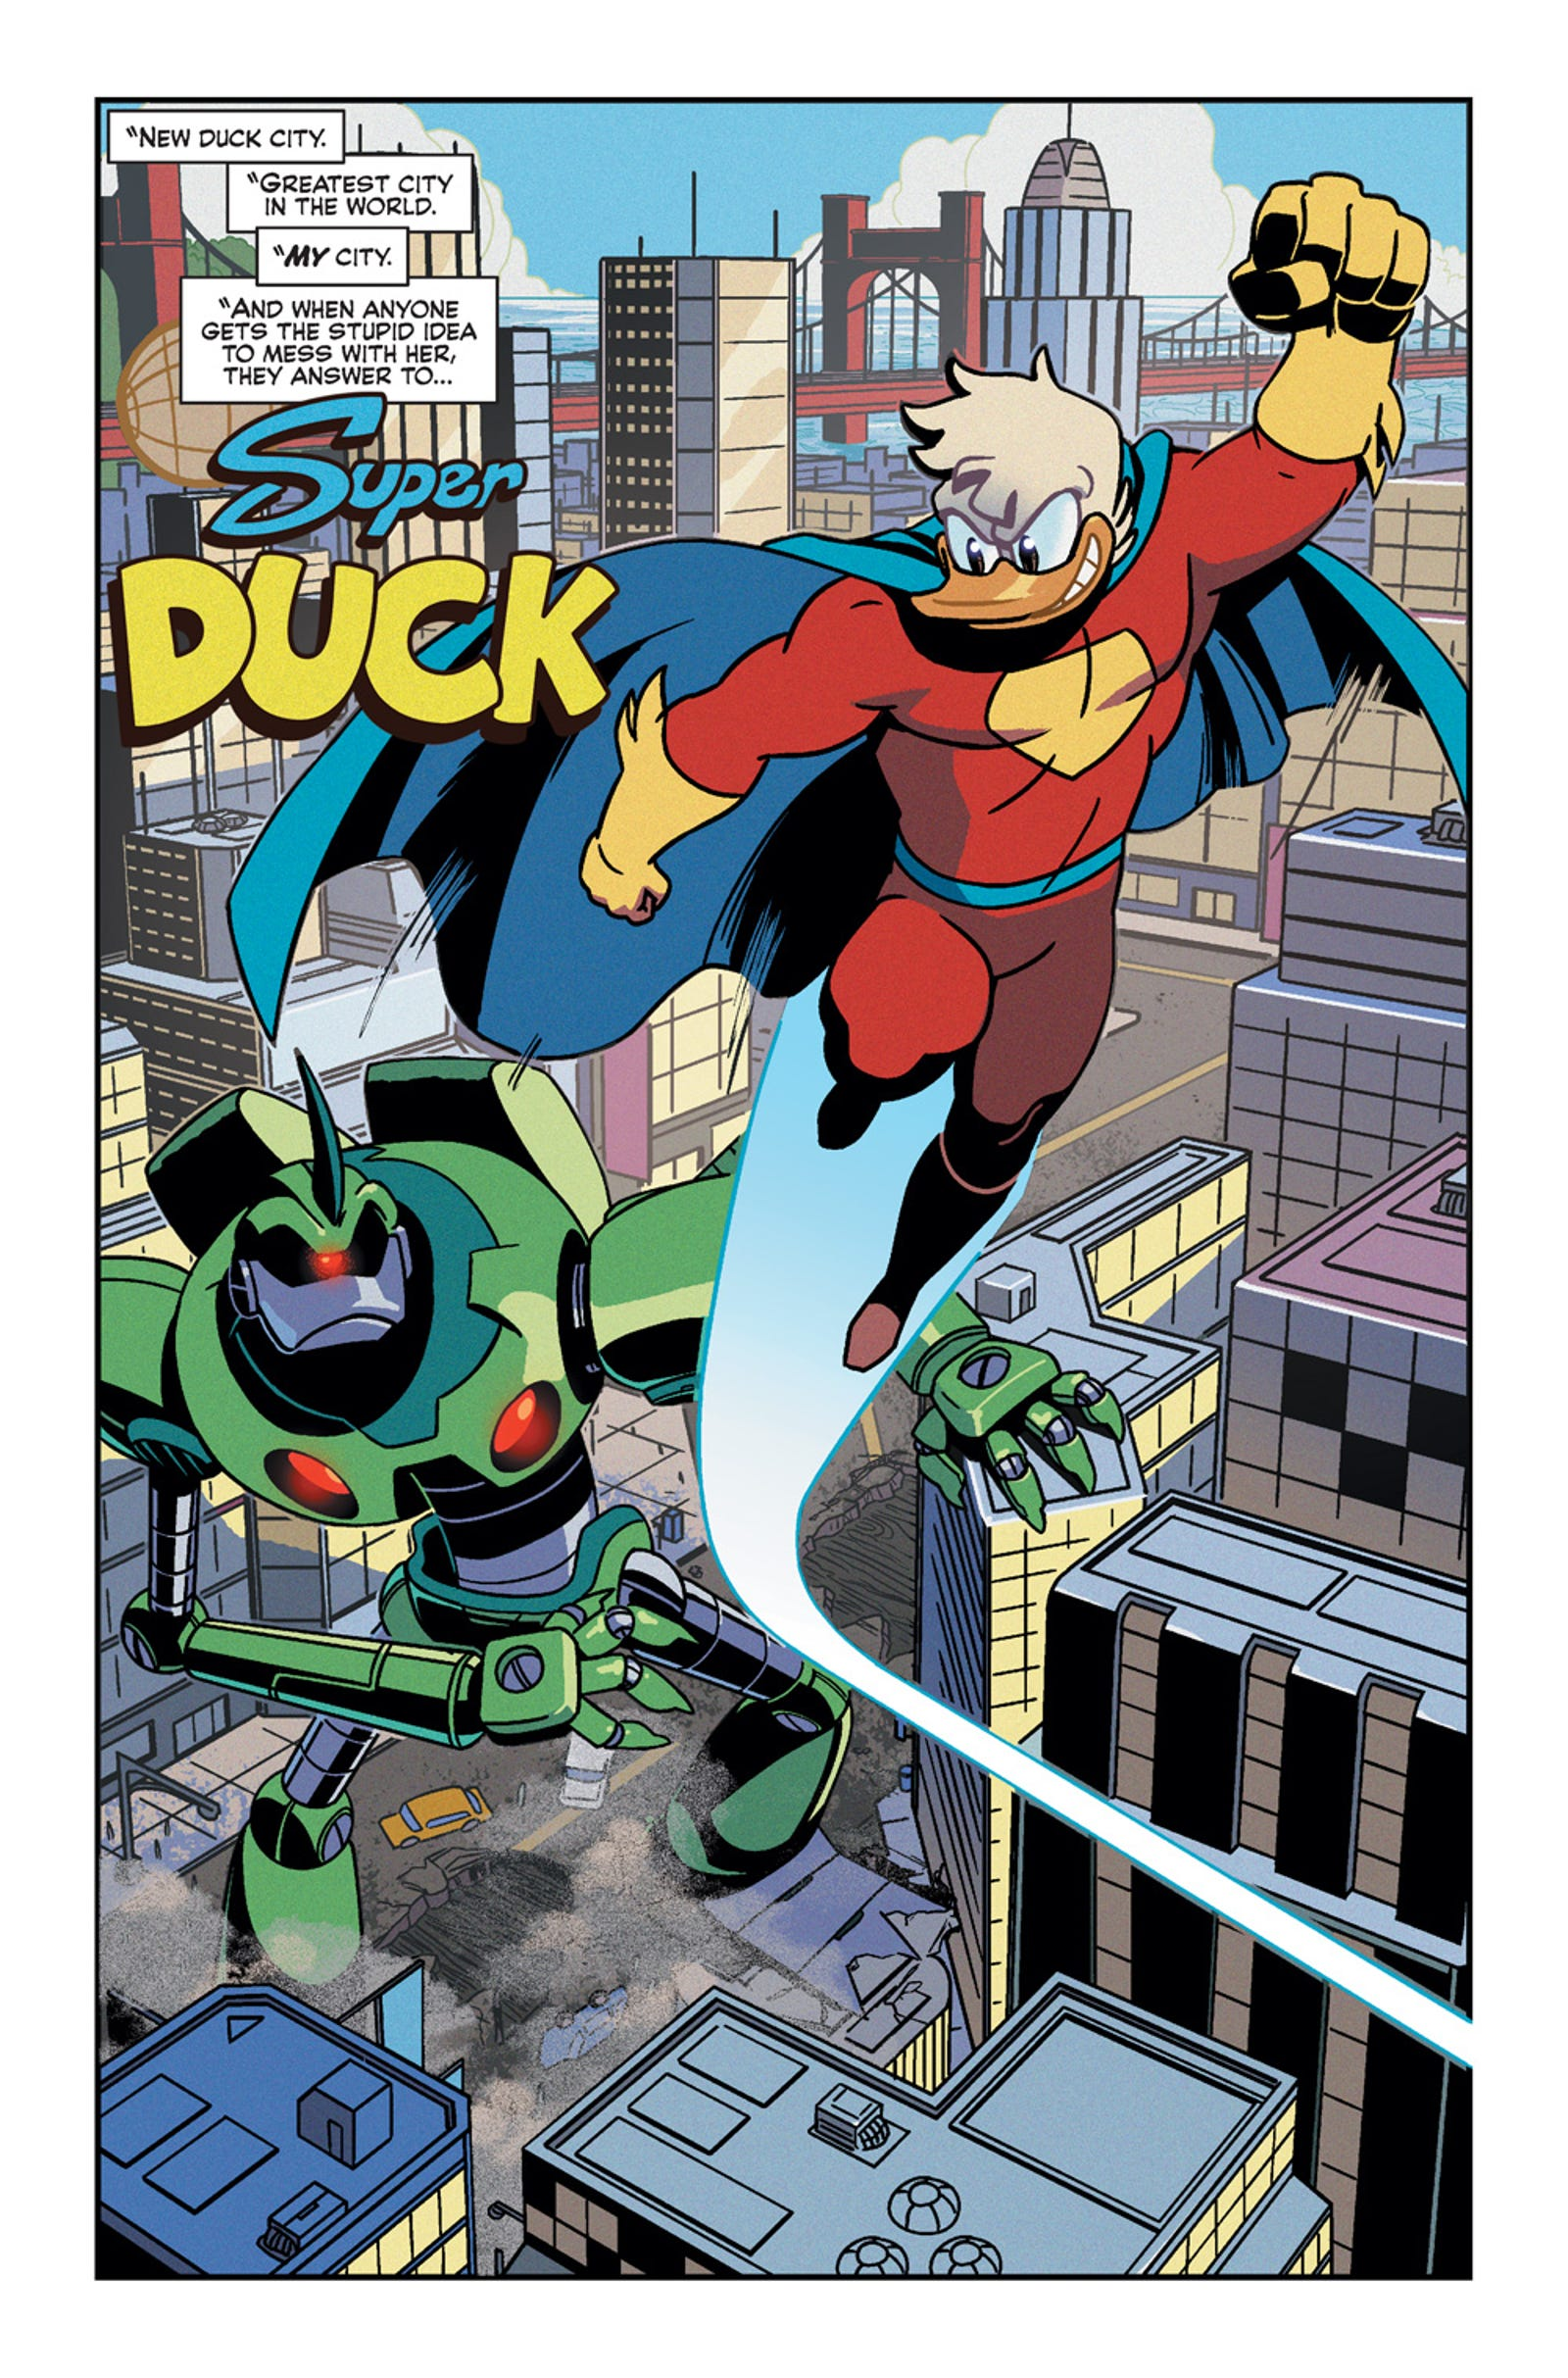 It's Super Duck v Dapper Duck in our exclusive preview of Super Duck #1!